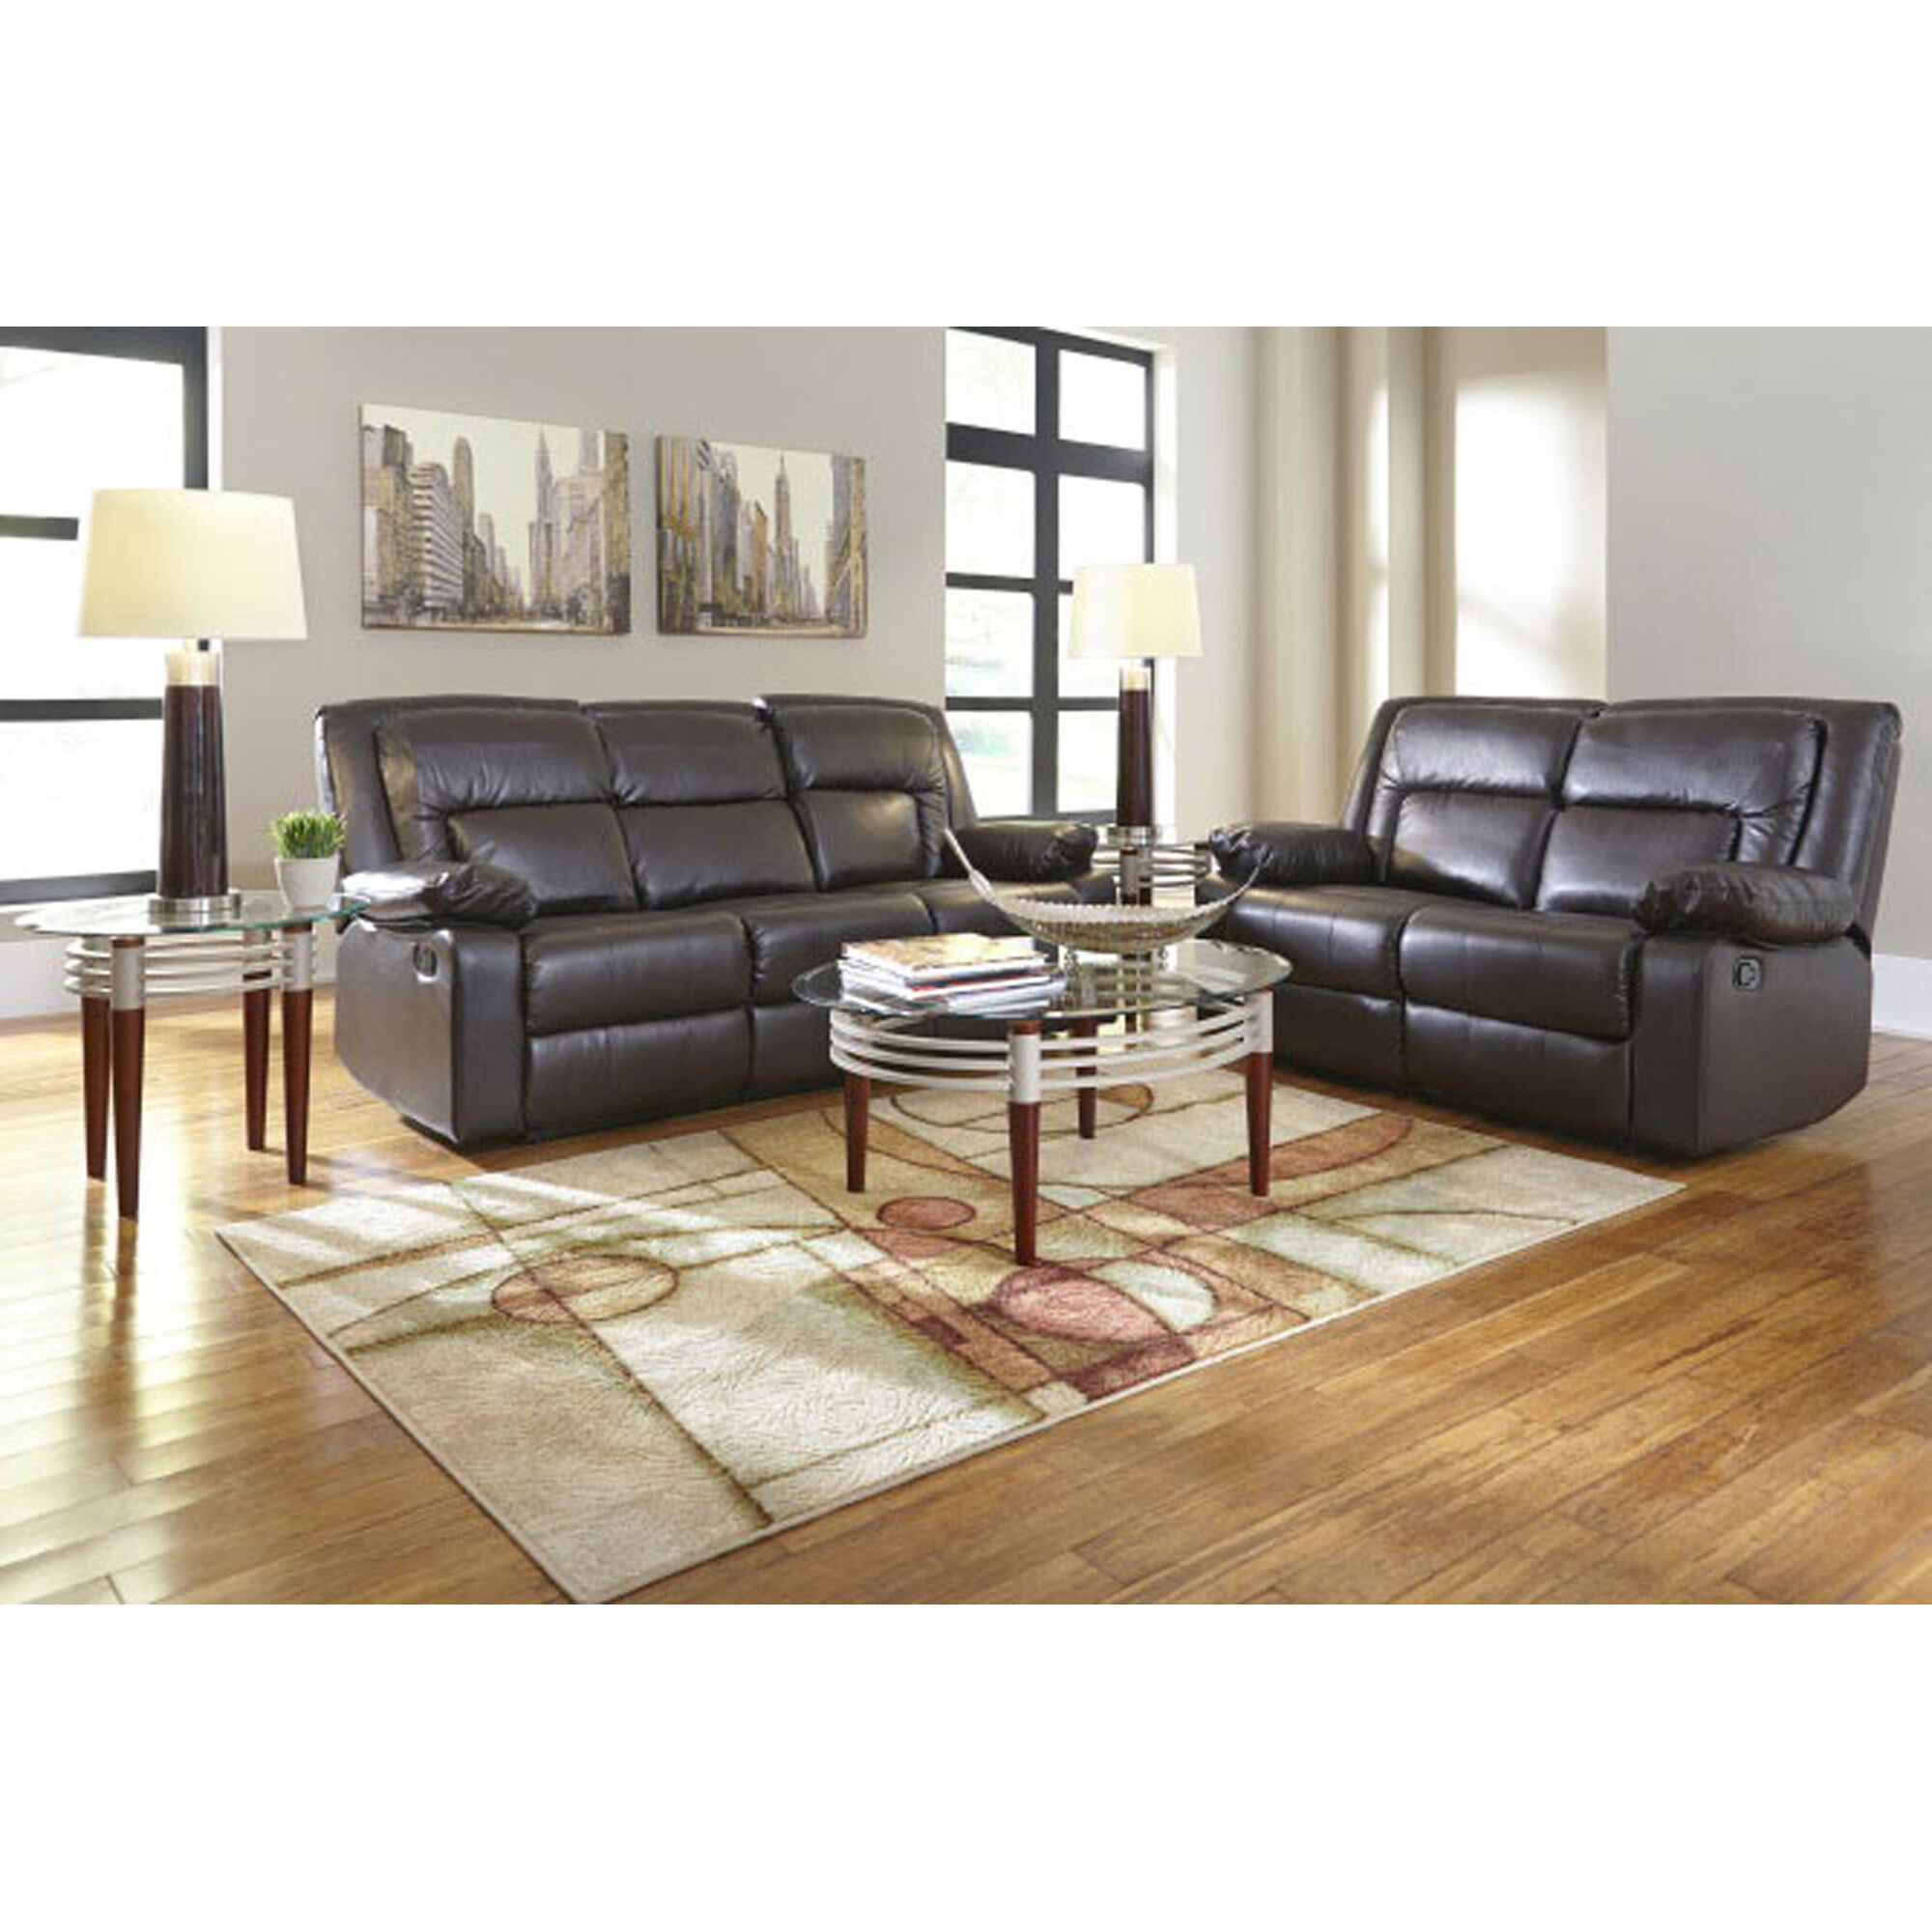 2 Piece Affinity Reclining Sofa And Loveseat